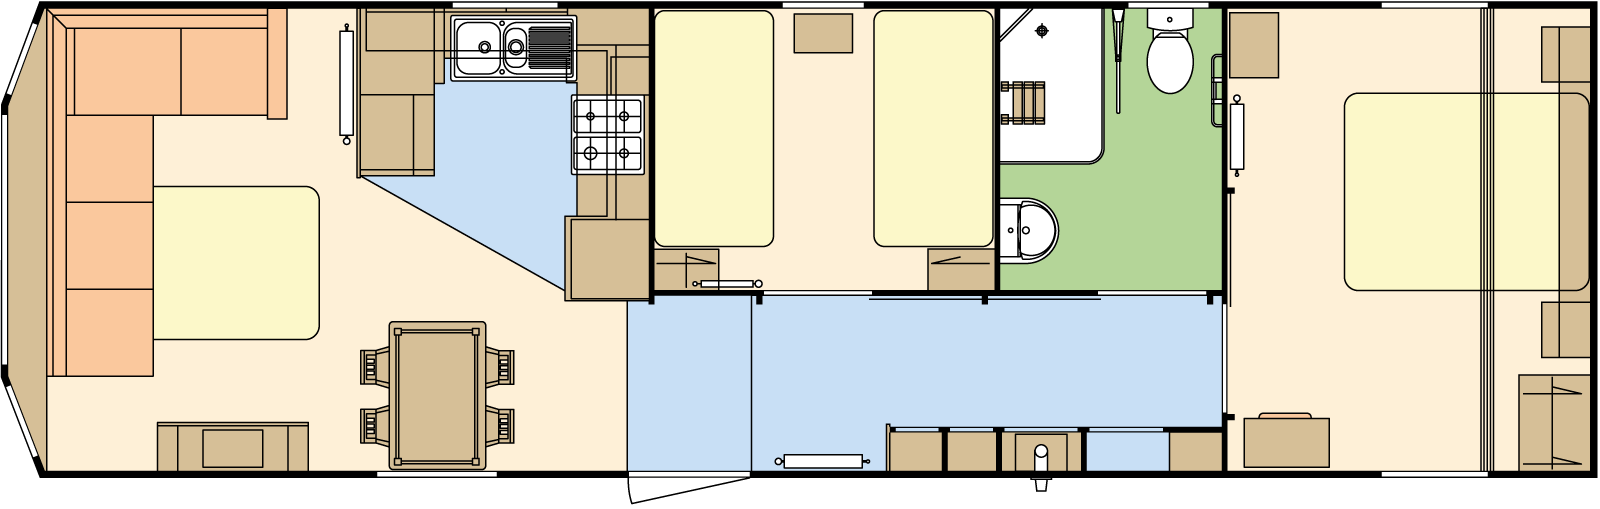 39 × 12 – 2 bedroom/6 berth